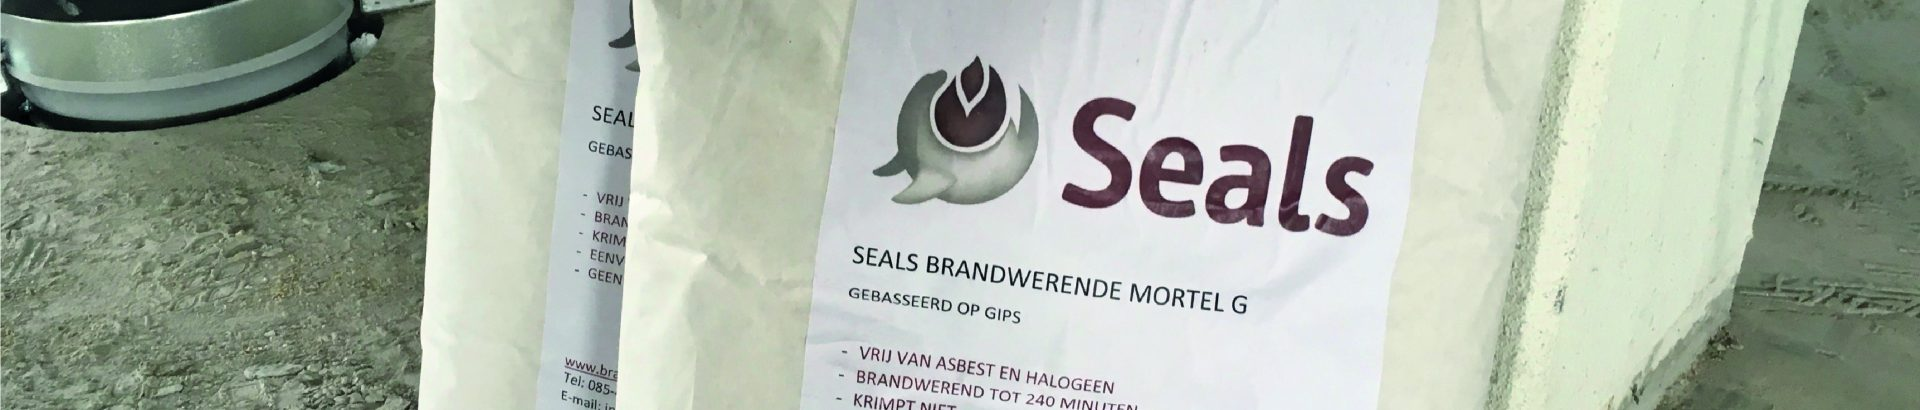 Banner Seals Brandwerende Mortel